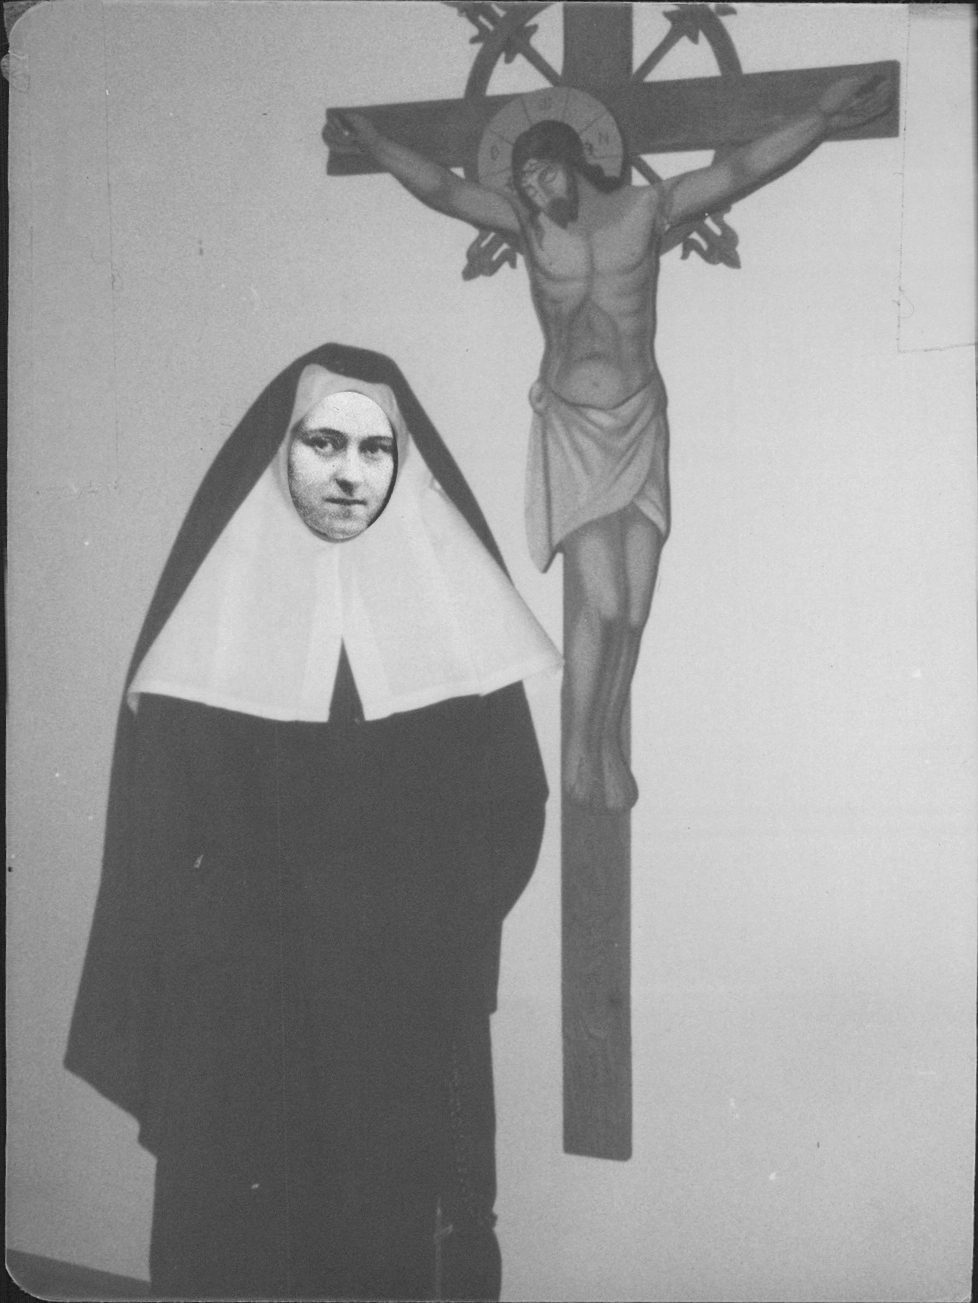 Nun next to crucifix